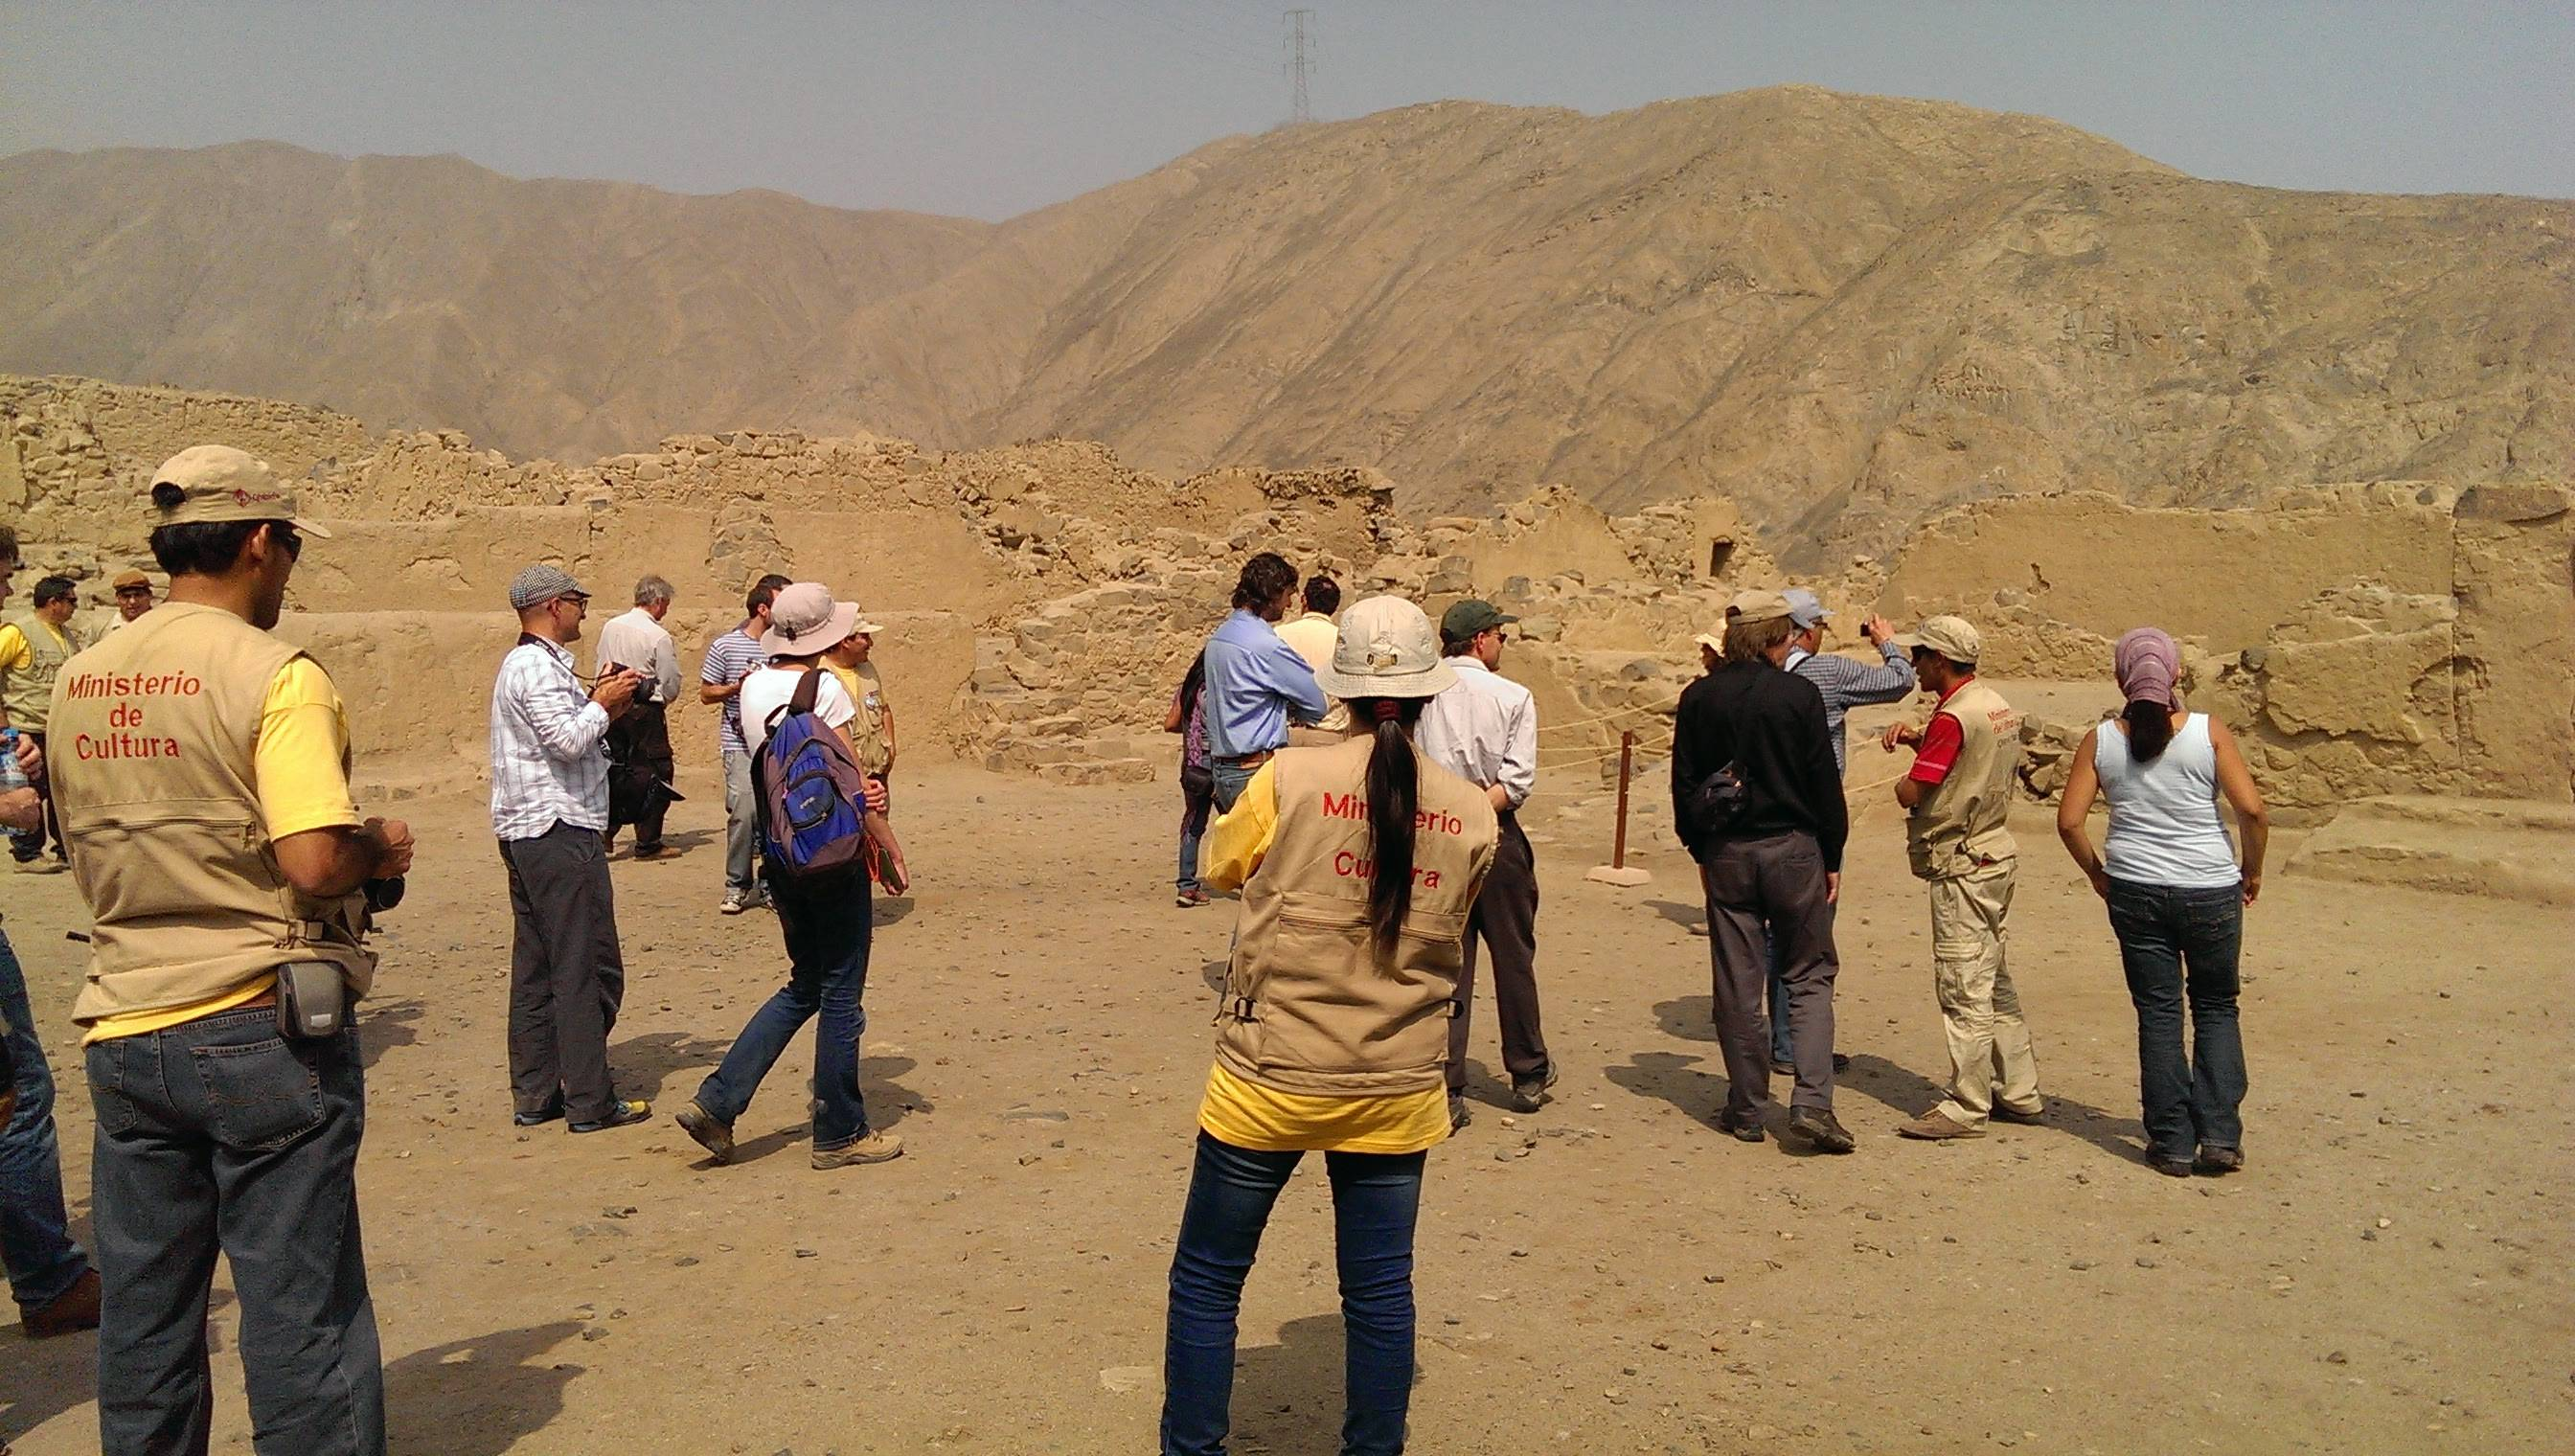 Huaycan de Cieneguilla - Archaeological site in Peru - Visit by american professors invited by Peruvian researchers from the Ministry of Culture